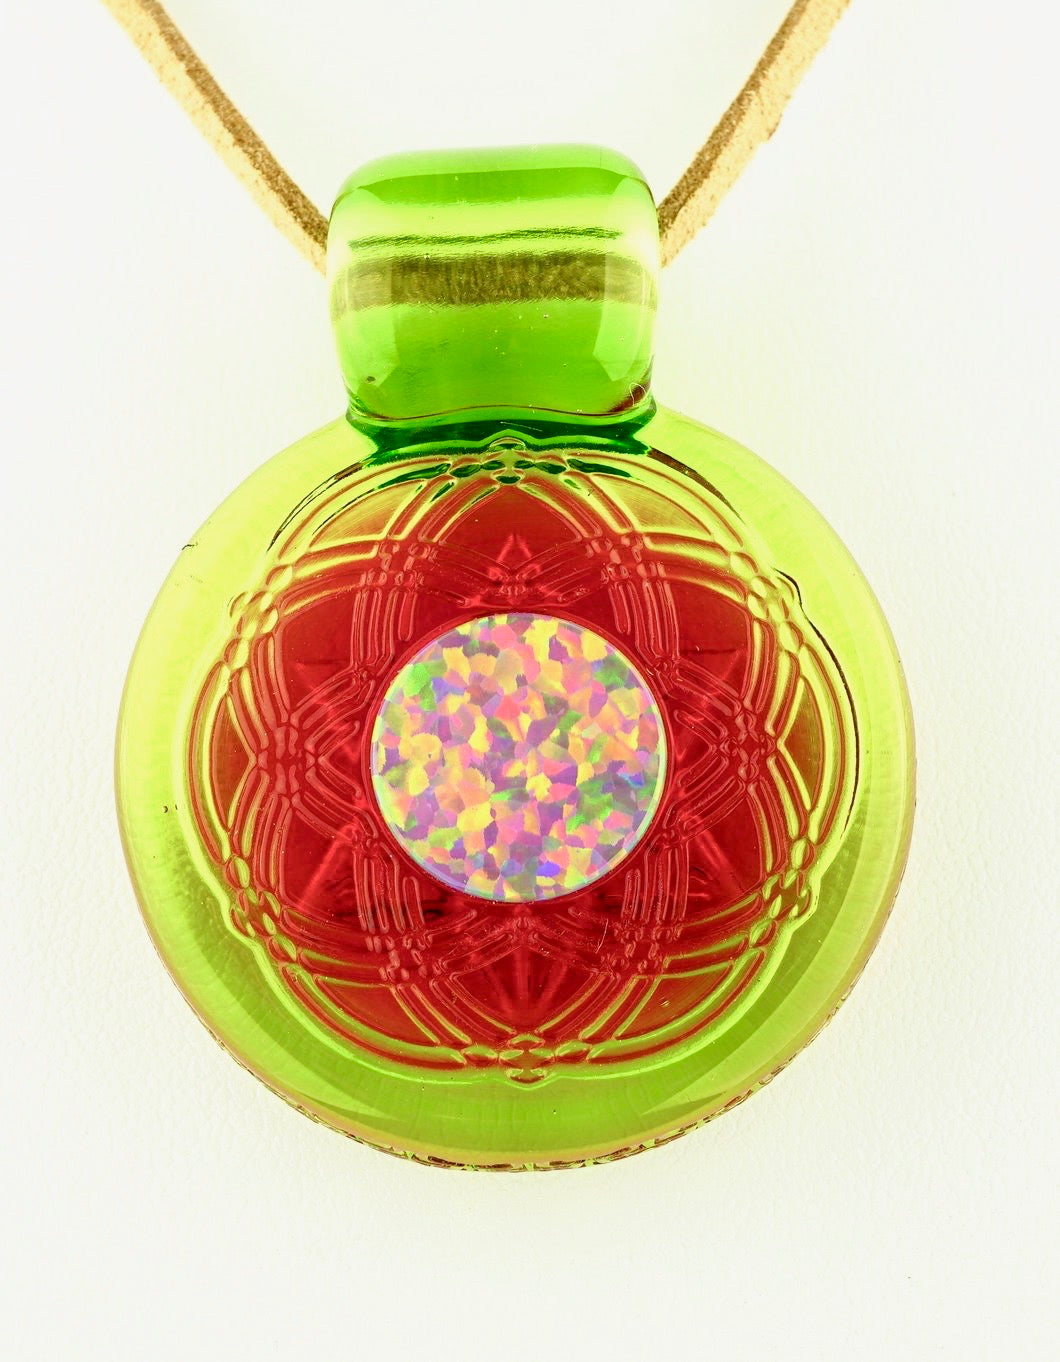 Glassmaze Transparent Seed of Life Mandala Pendant with 15mm Opal